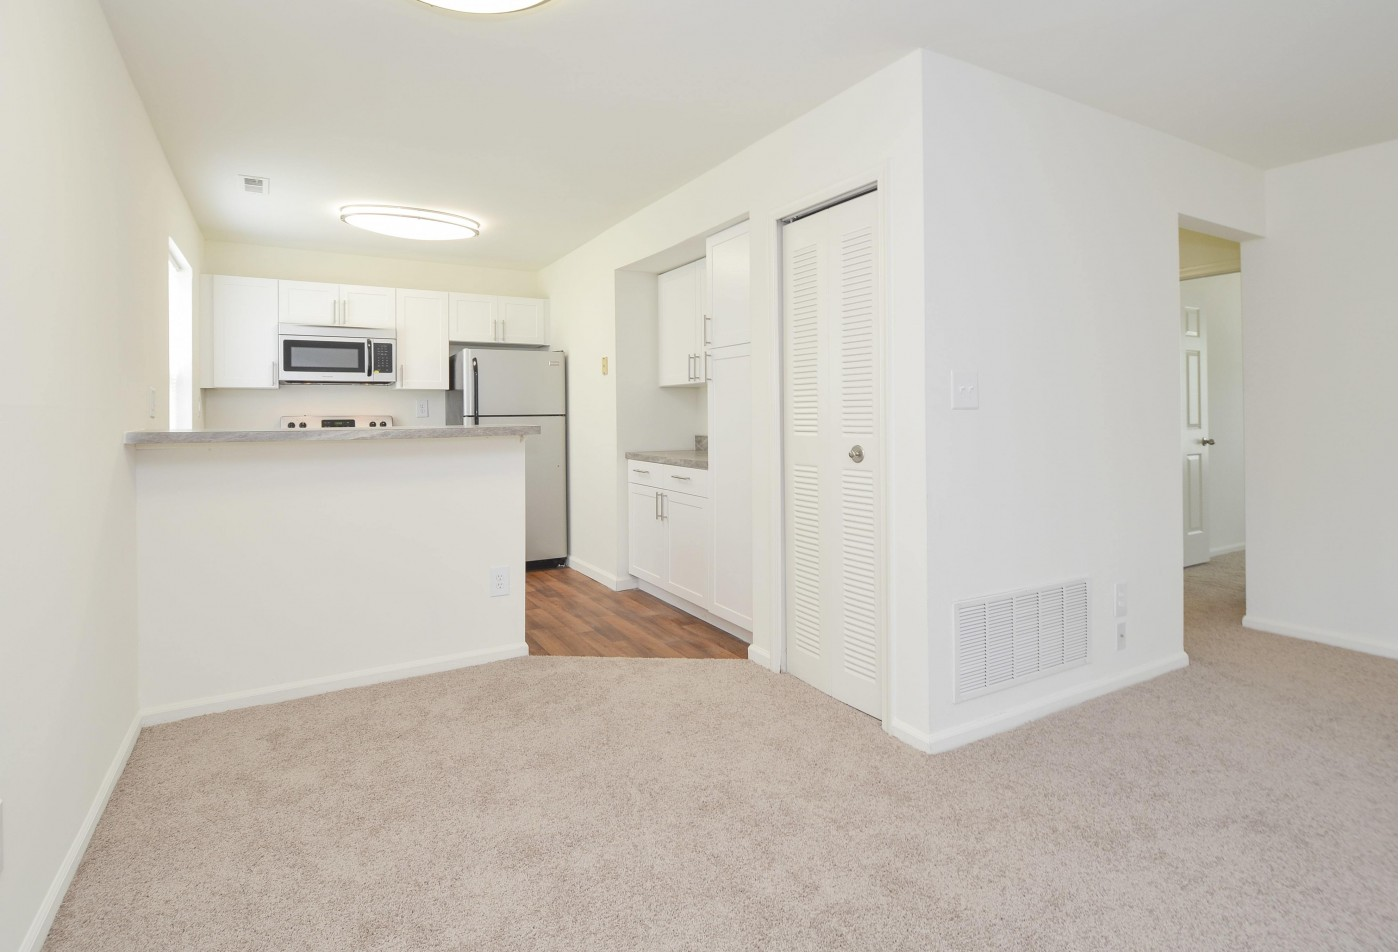 Spacious Hallway | Apartments in Marlton, NJ | Willlow Ridge Village Apartments